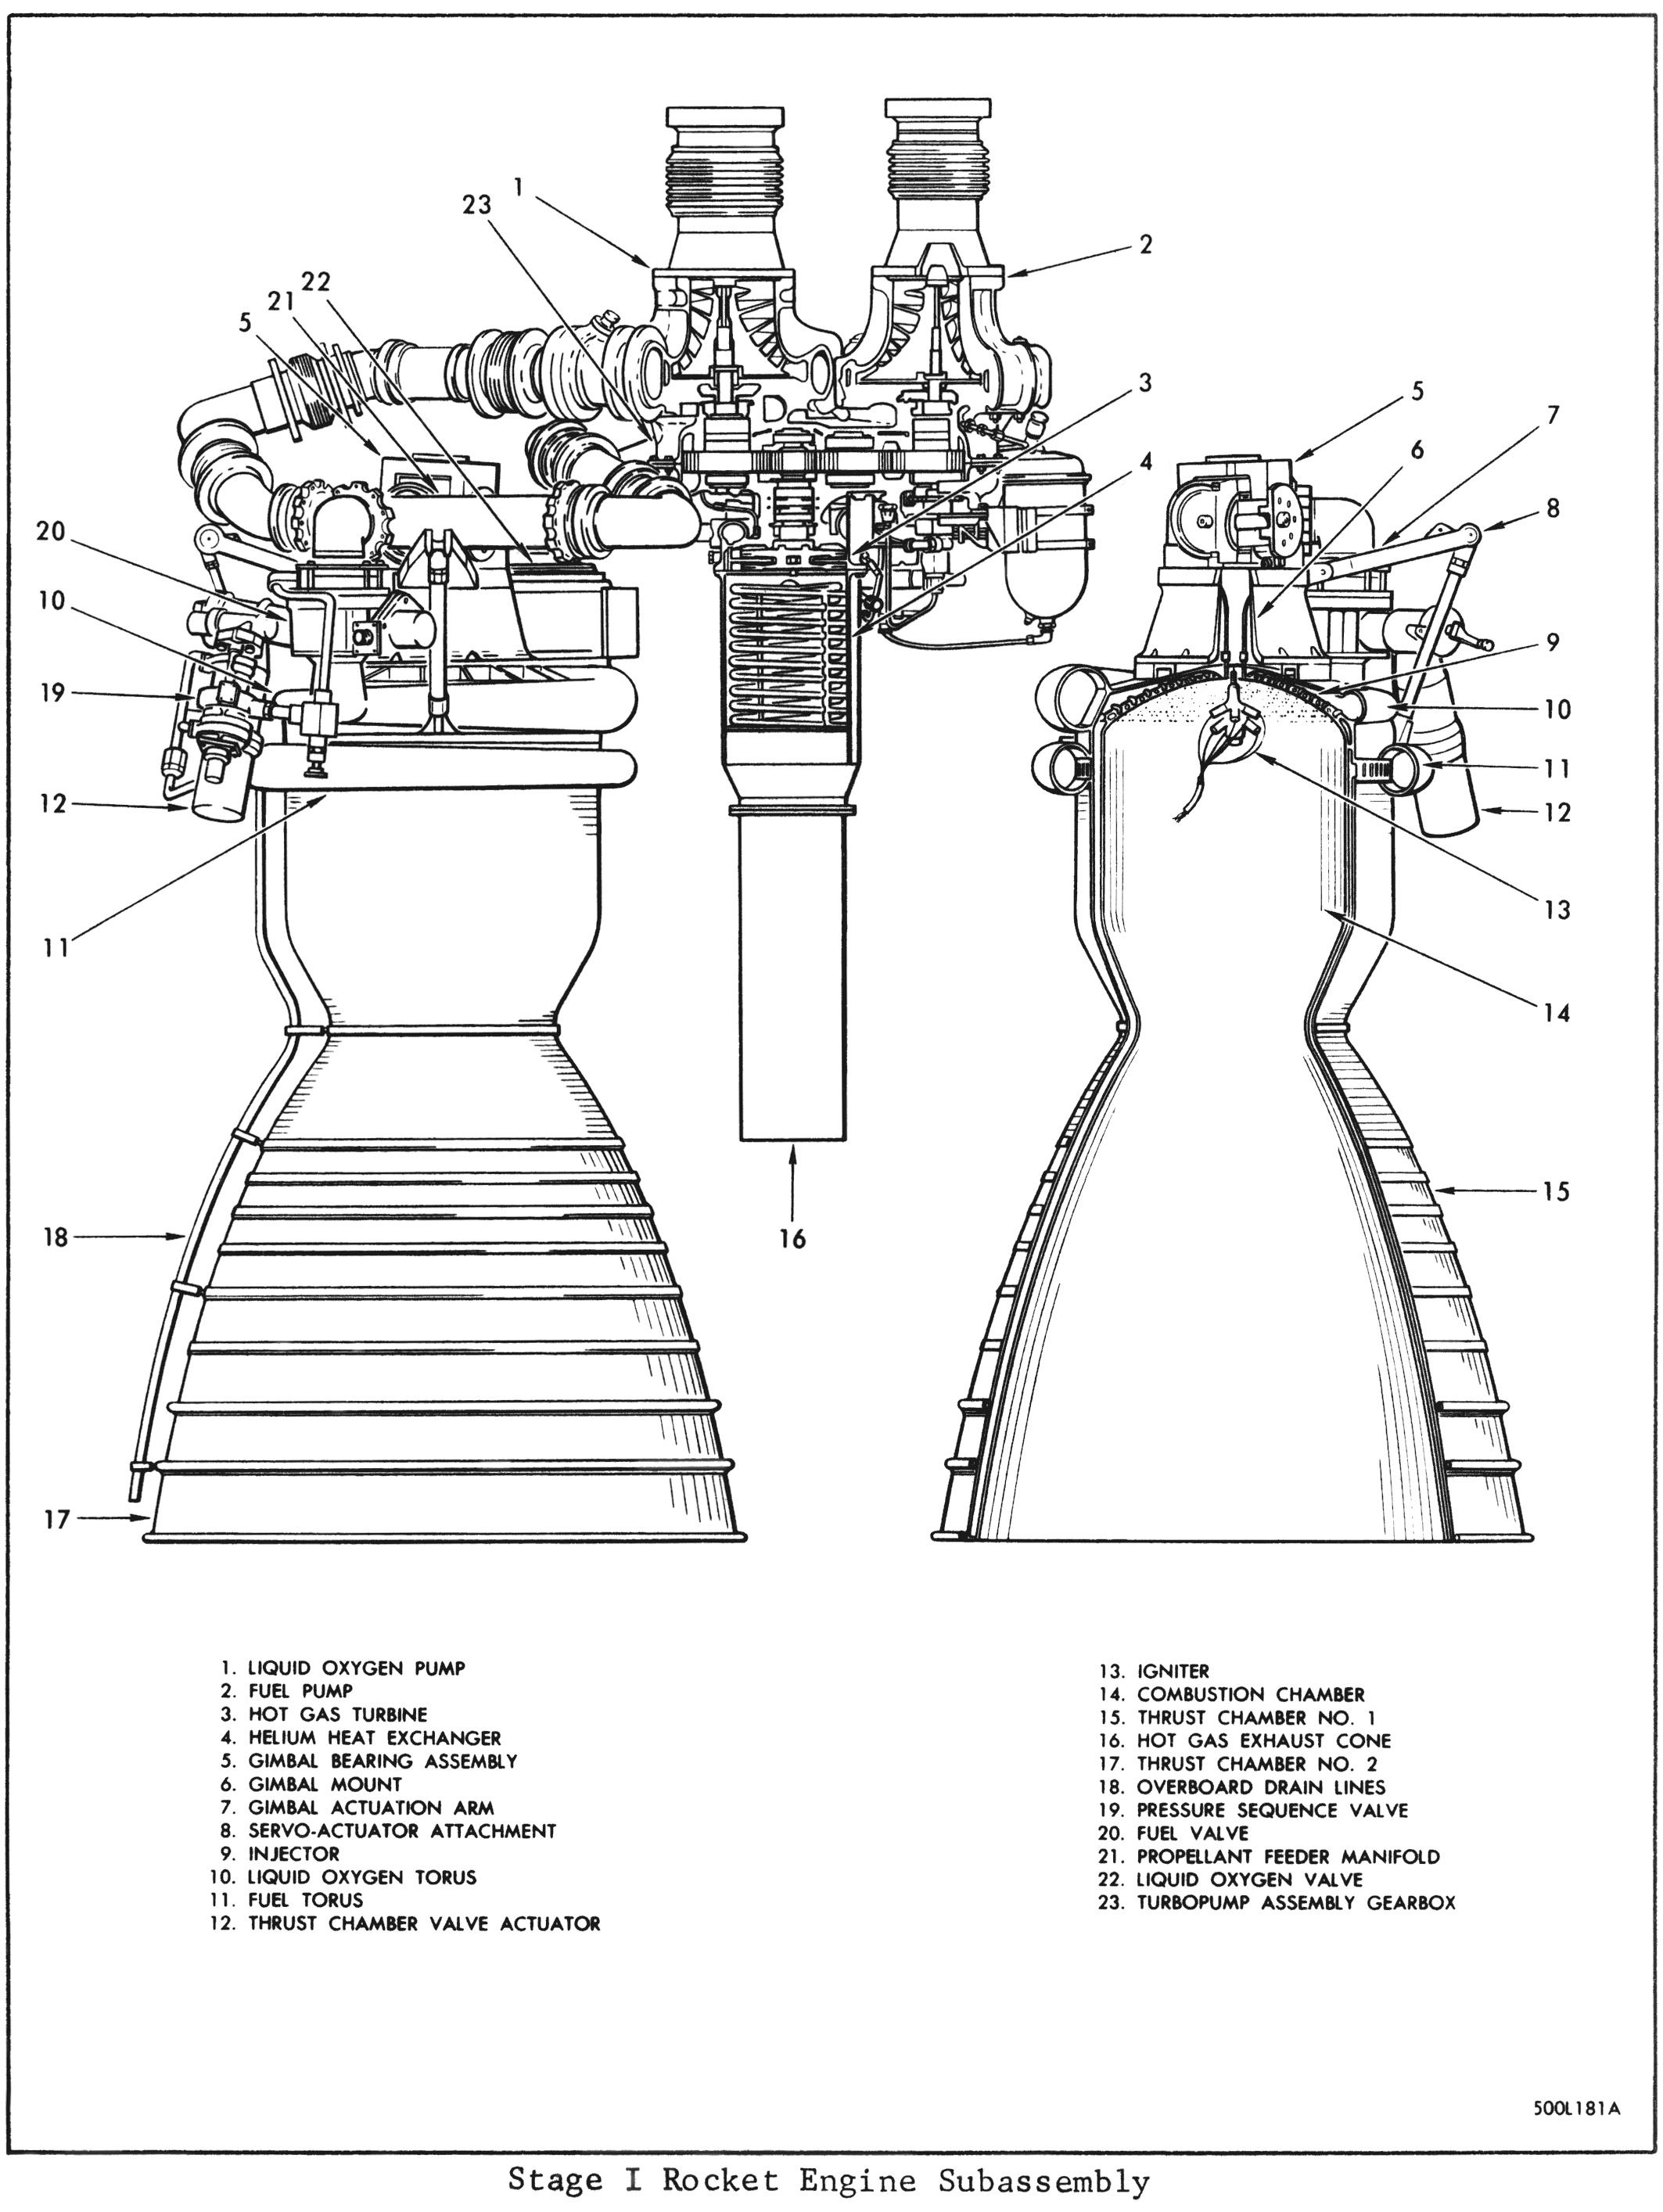 Titan Fuel Pump Service Manual